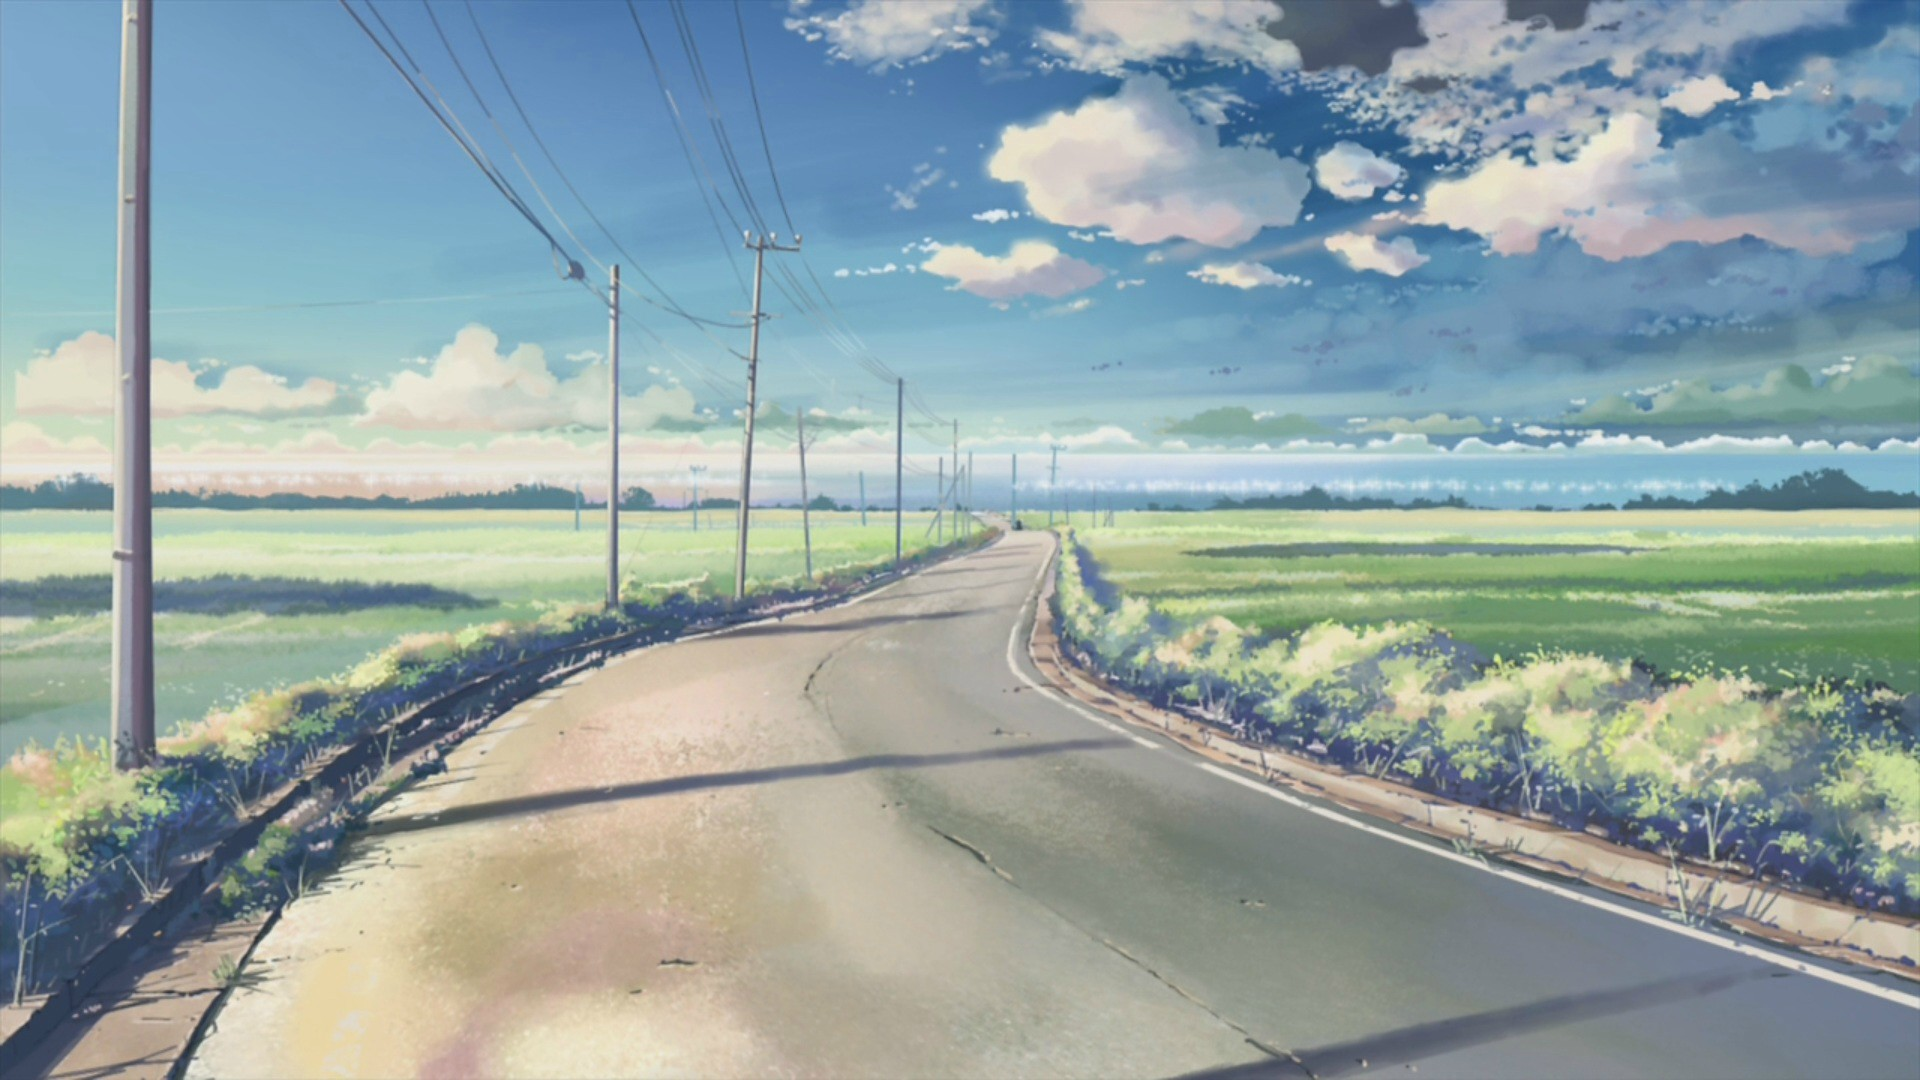 The Artist's Road